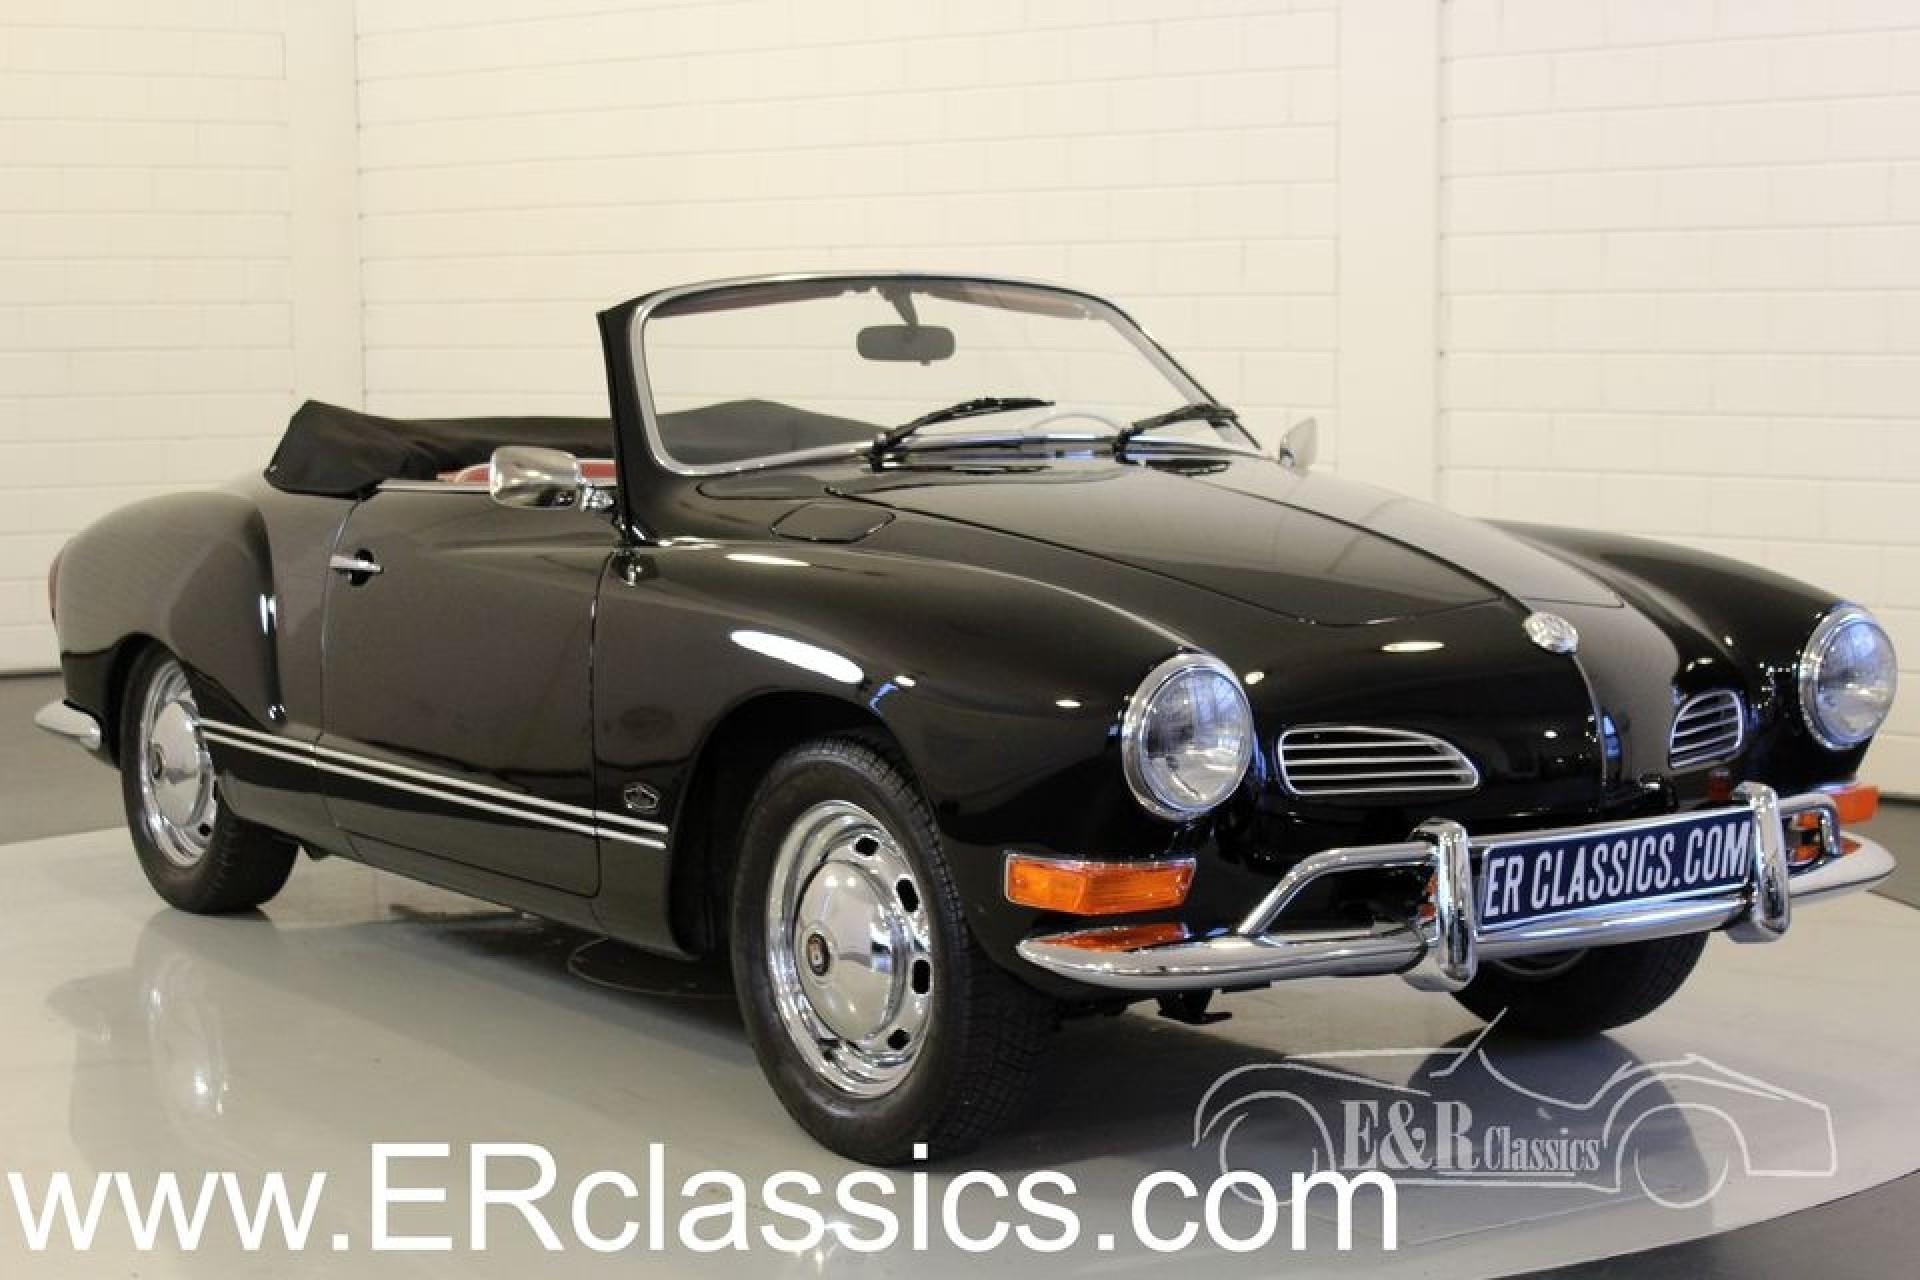 vw karmann ghia cabriolet 1971 vendre erclassics. Black Bedroom Furniture Sets. Home Design Ideas